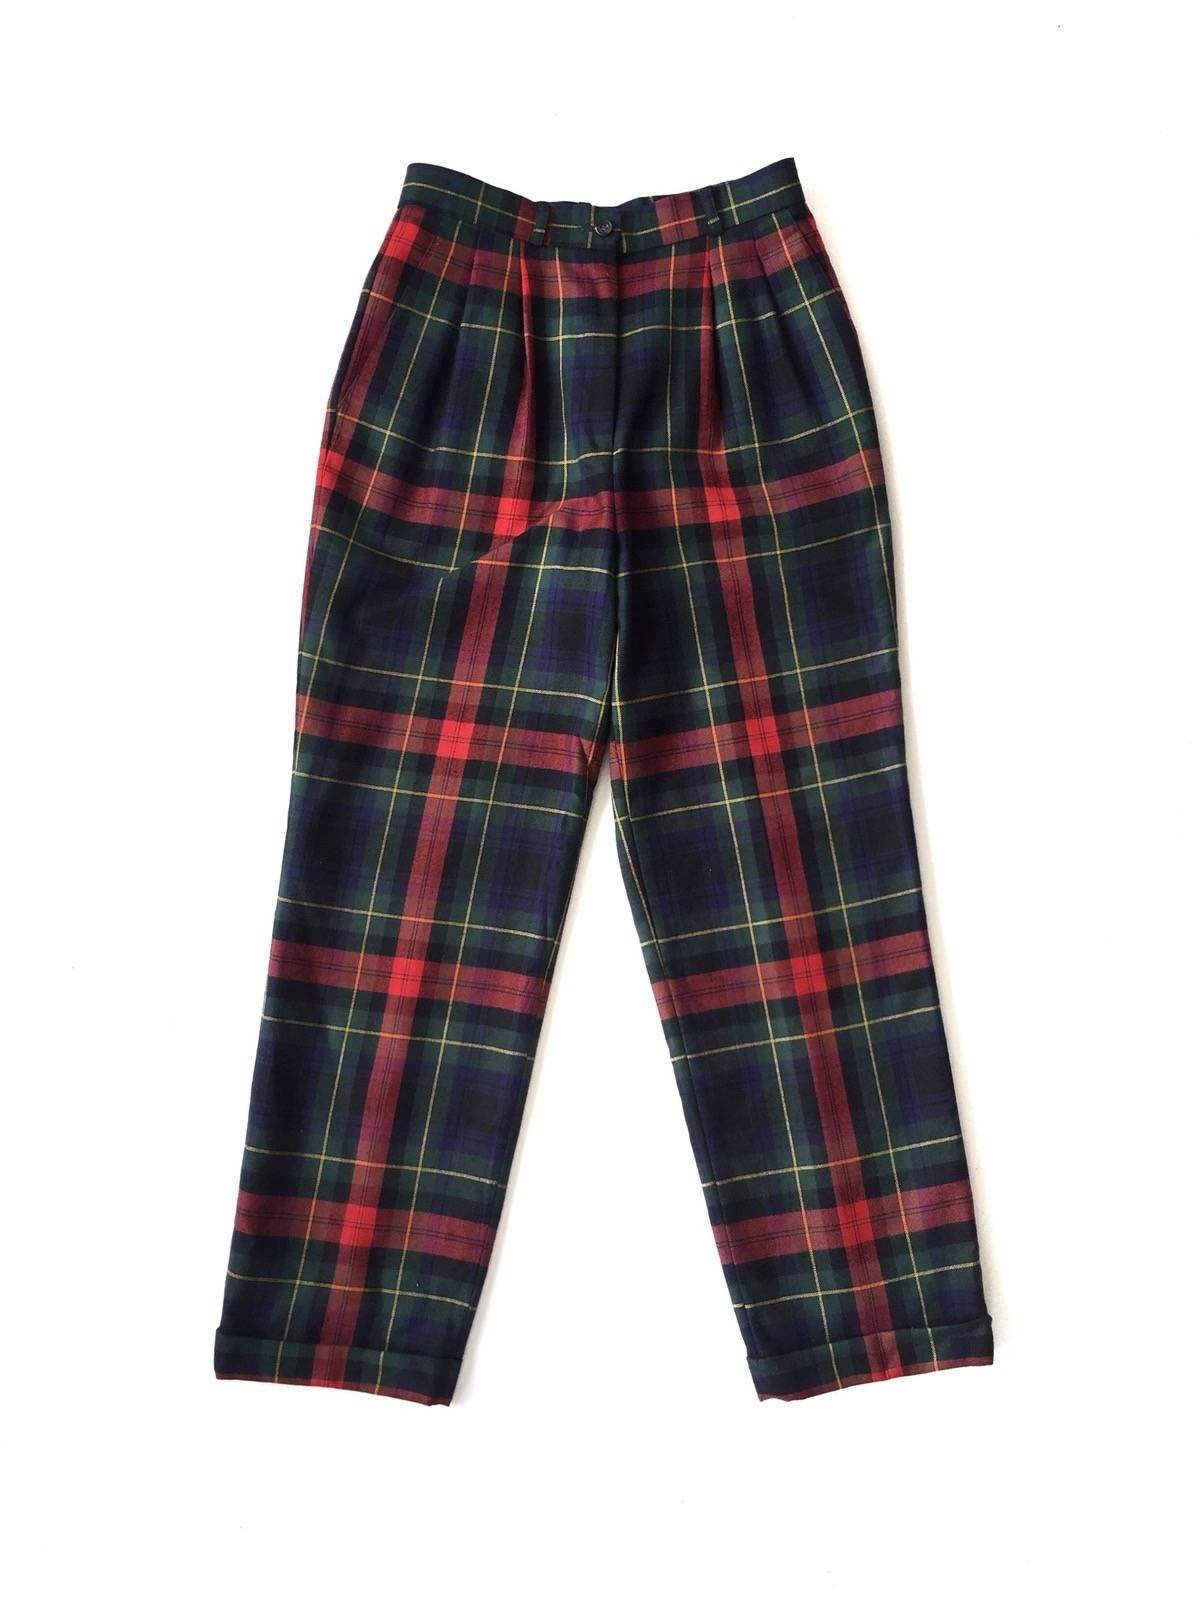 Austin Reed Austin Reed London Multicolor Checkered Plaid Gabardine Wool Trousers Pants Grailed